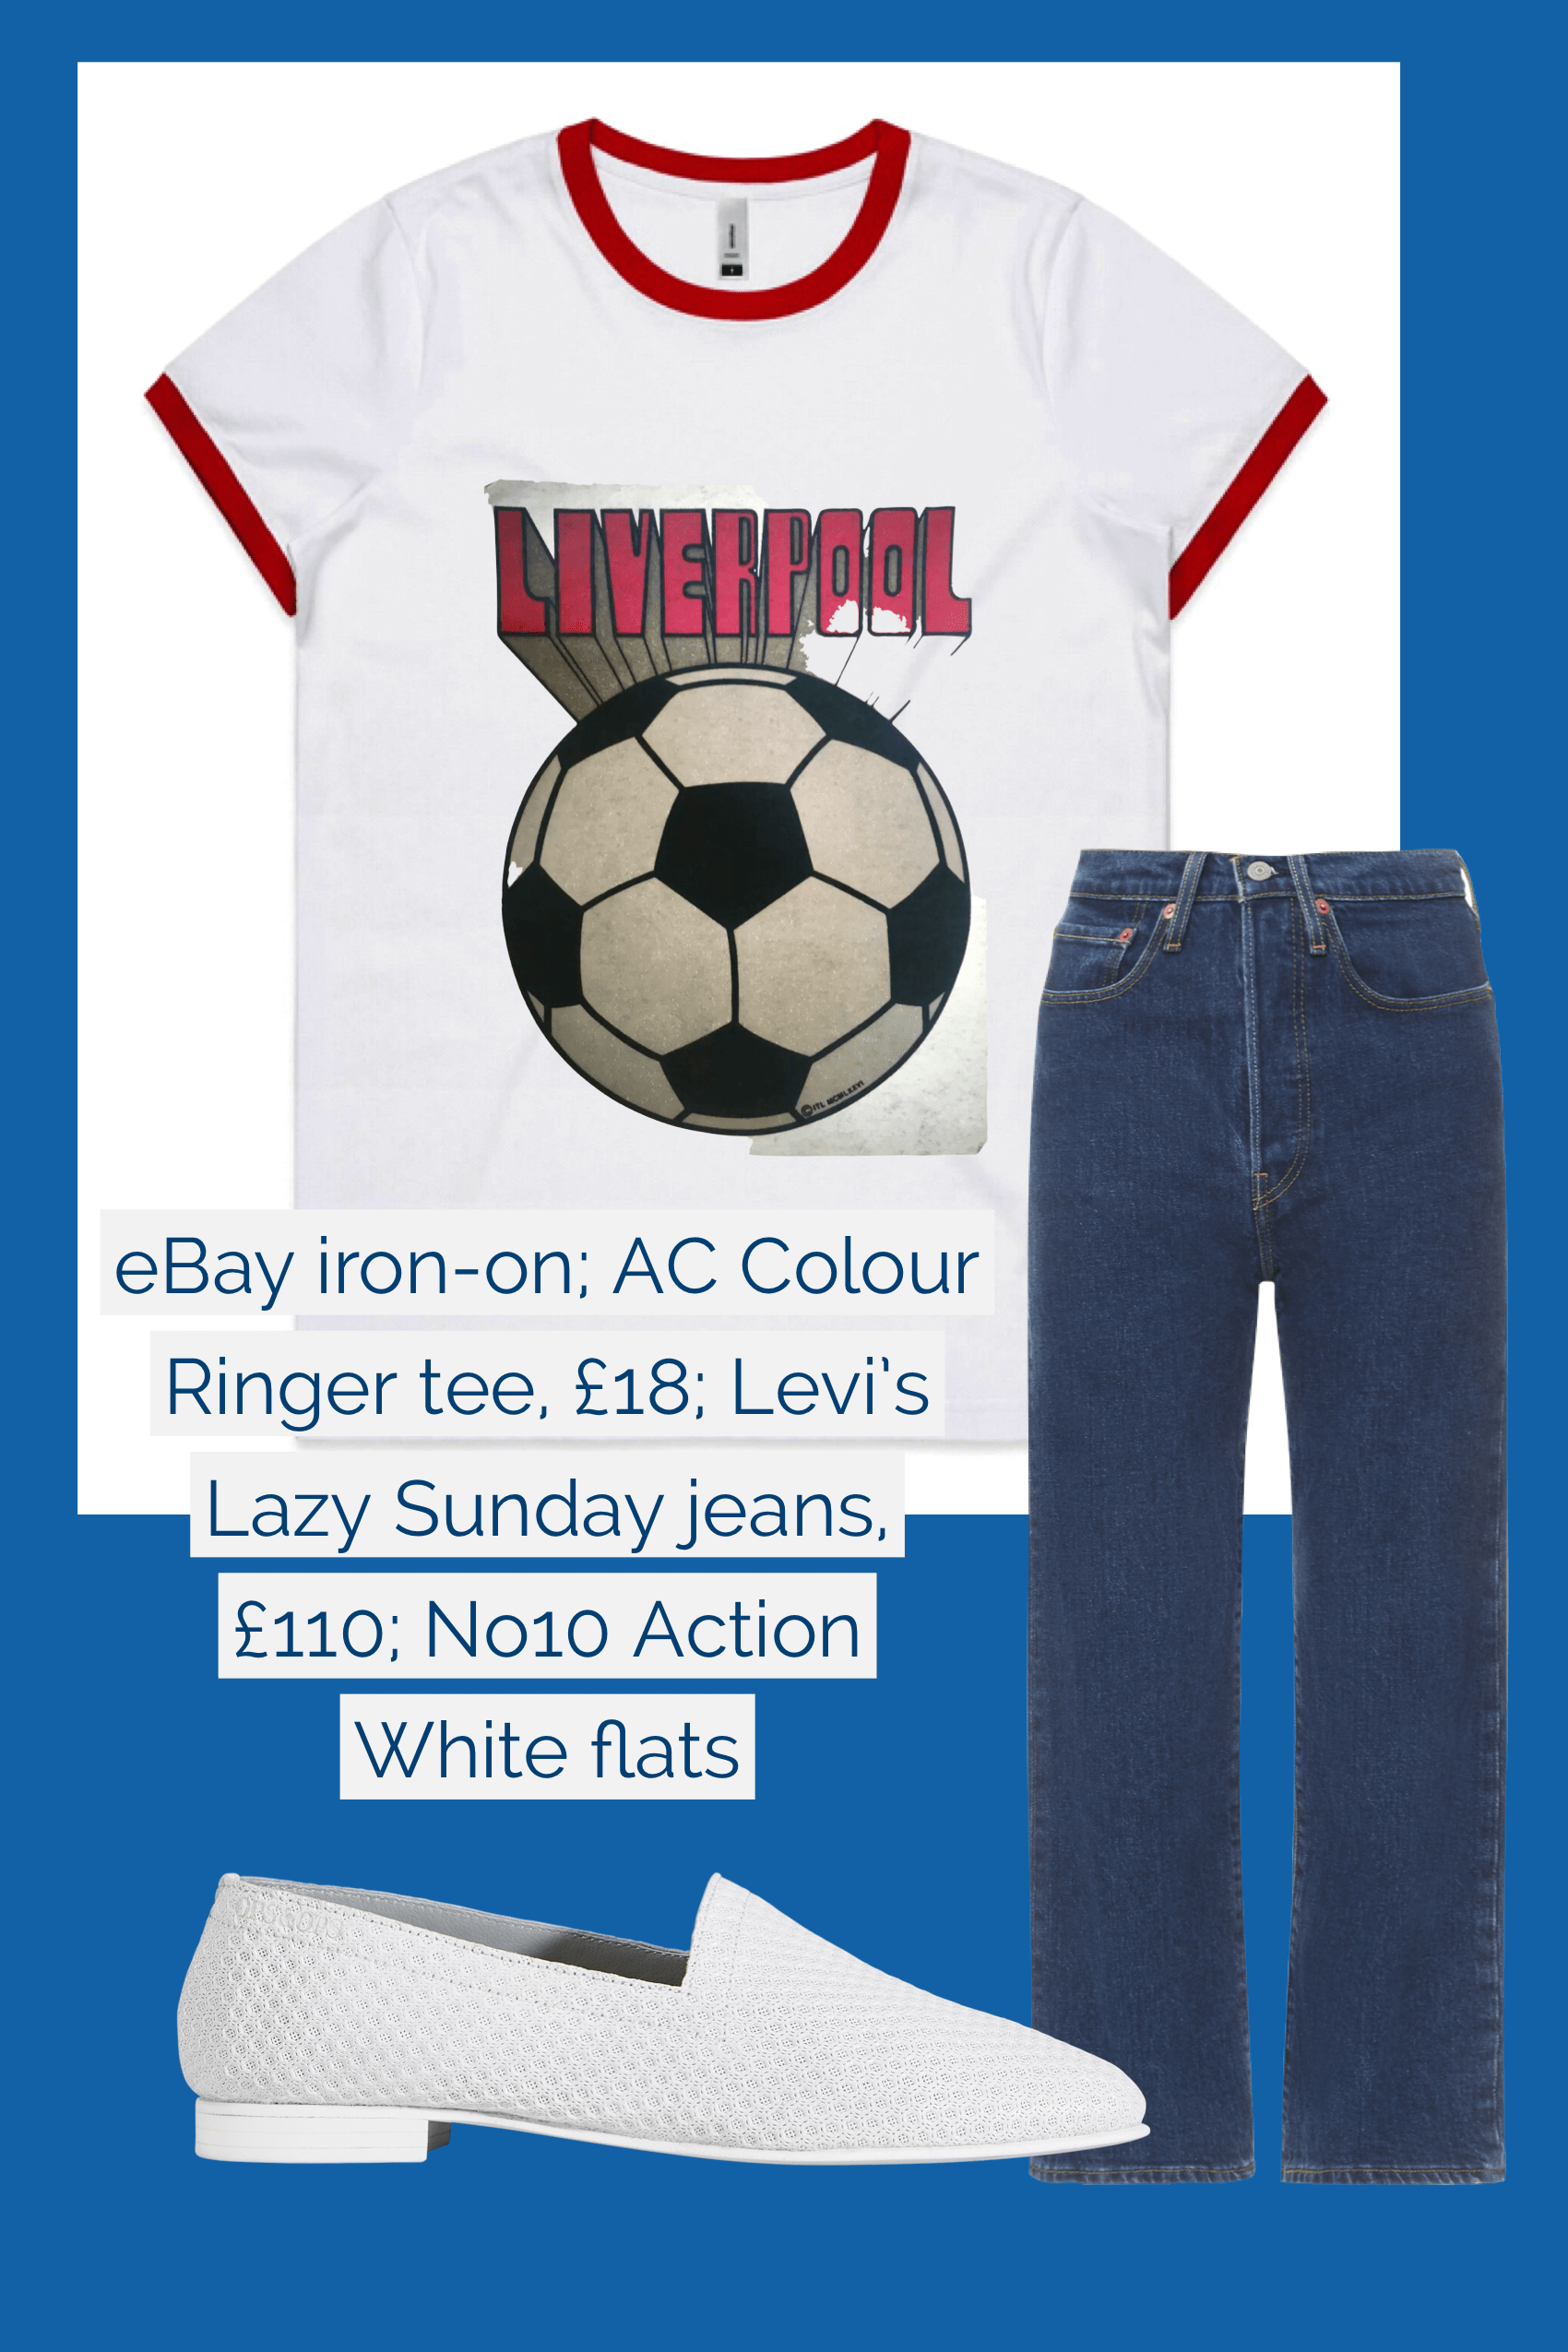 Ops&Ops No10 Action White flats teamed with Levi's jeans and AC Colour t-shirt with eBay Liverpool iron-on